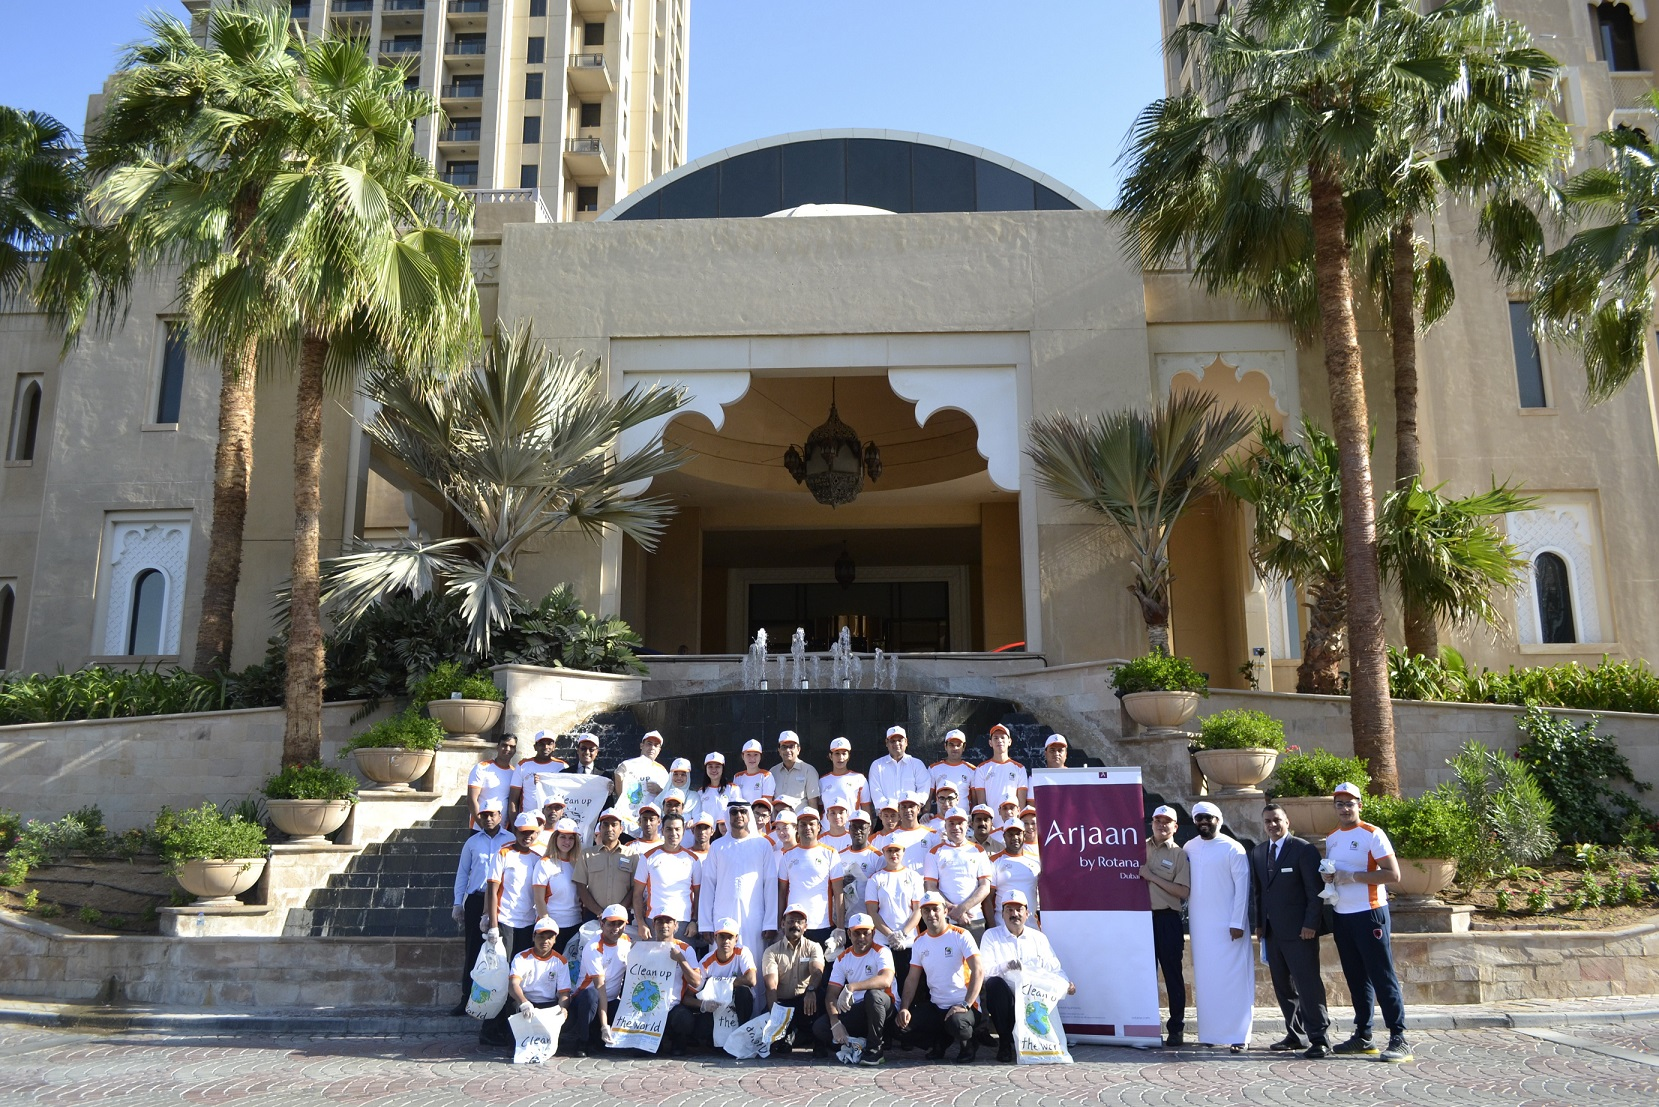 Arjaan by Rotana Joined Forces for the 'Clean Up the World' Campaign